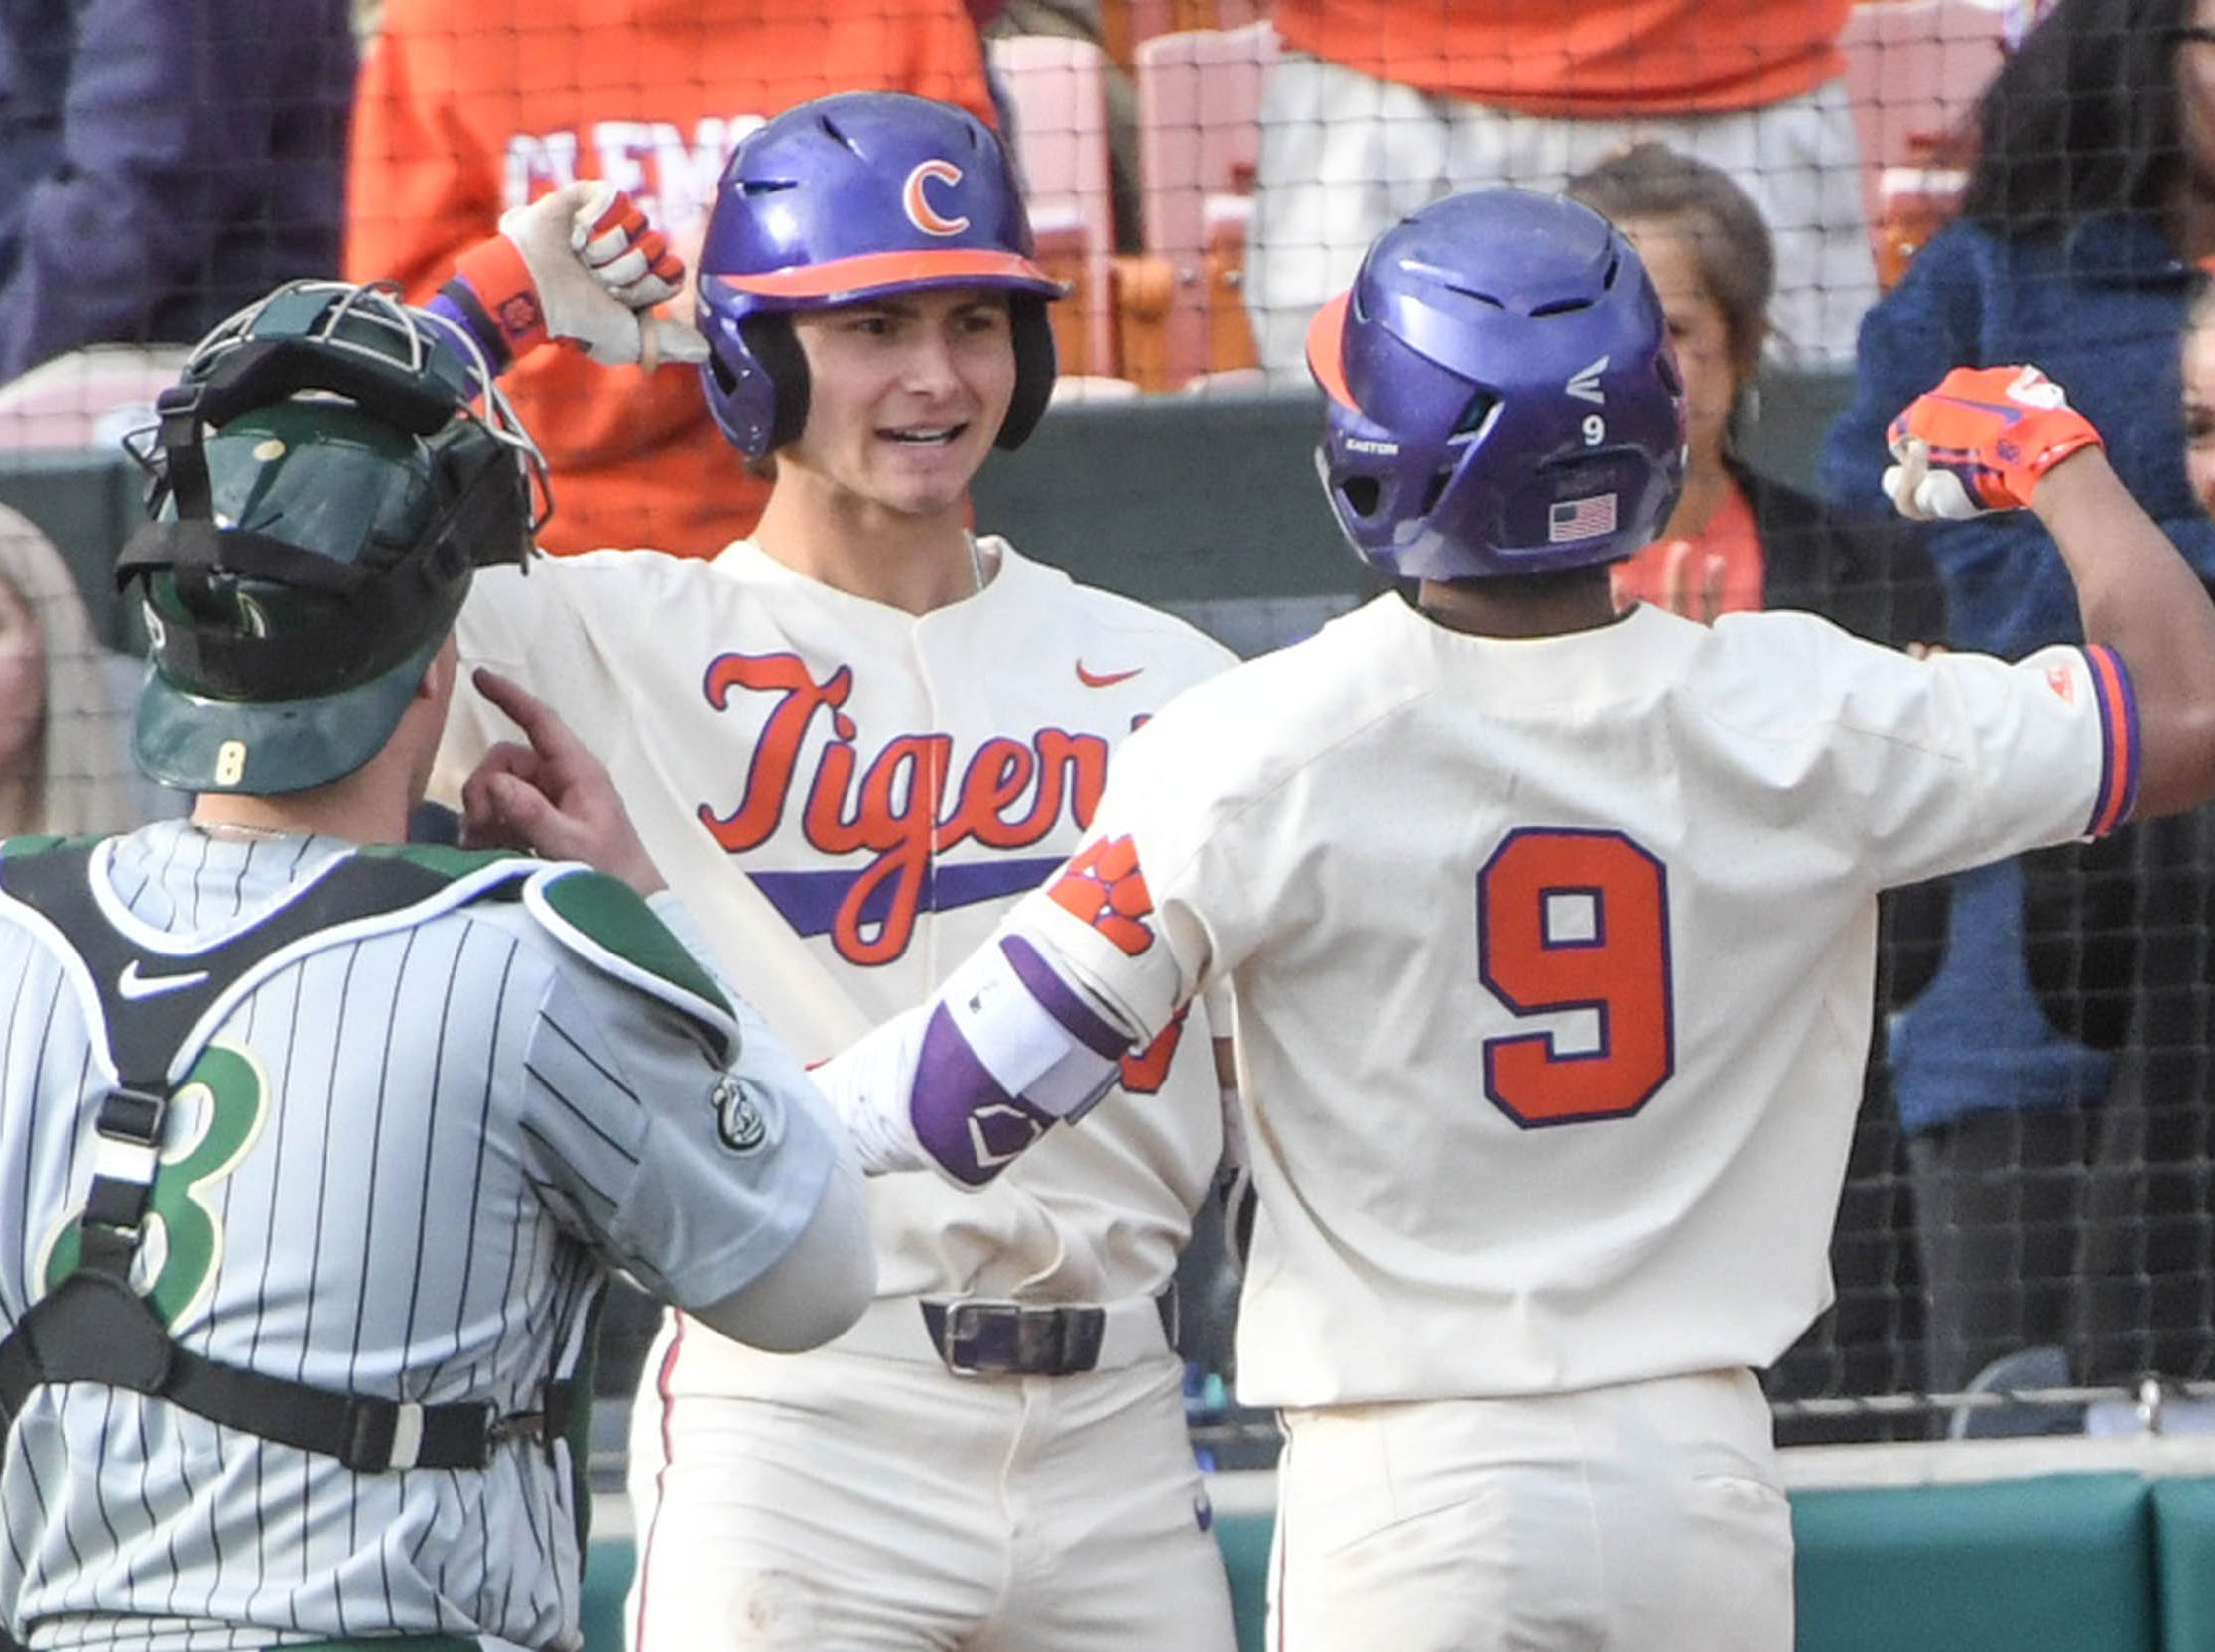 Clemson infielder Jordan Greene(9) celebrates with Clemson sophomore Bryce Teodosio(13) after hitting a home run against Charlotte during the bottom of the second inning at Doug Kingsmore Stadium in Clemson Monday, February 18, 2019.